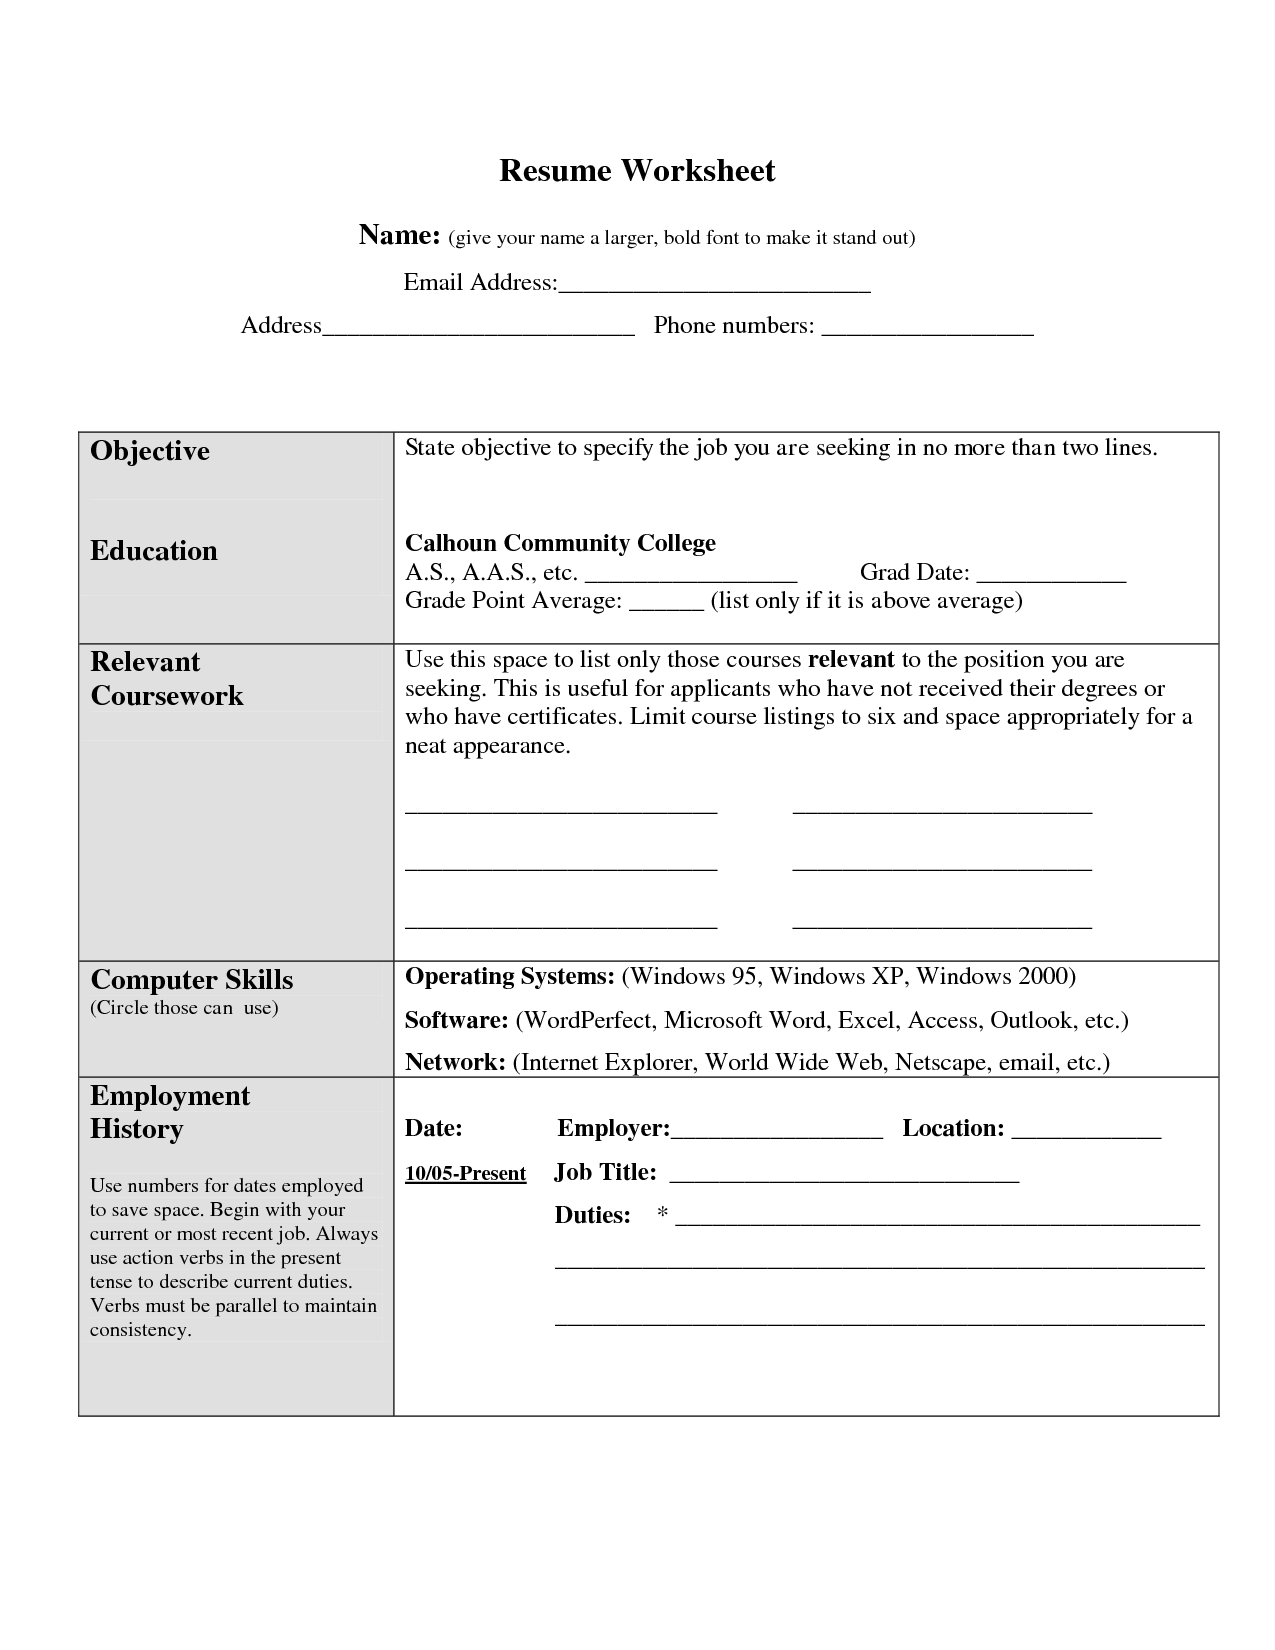 Worksheet Resume Worksheet For High School Students Grass Fedjp Worksheet Study Site